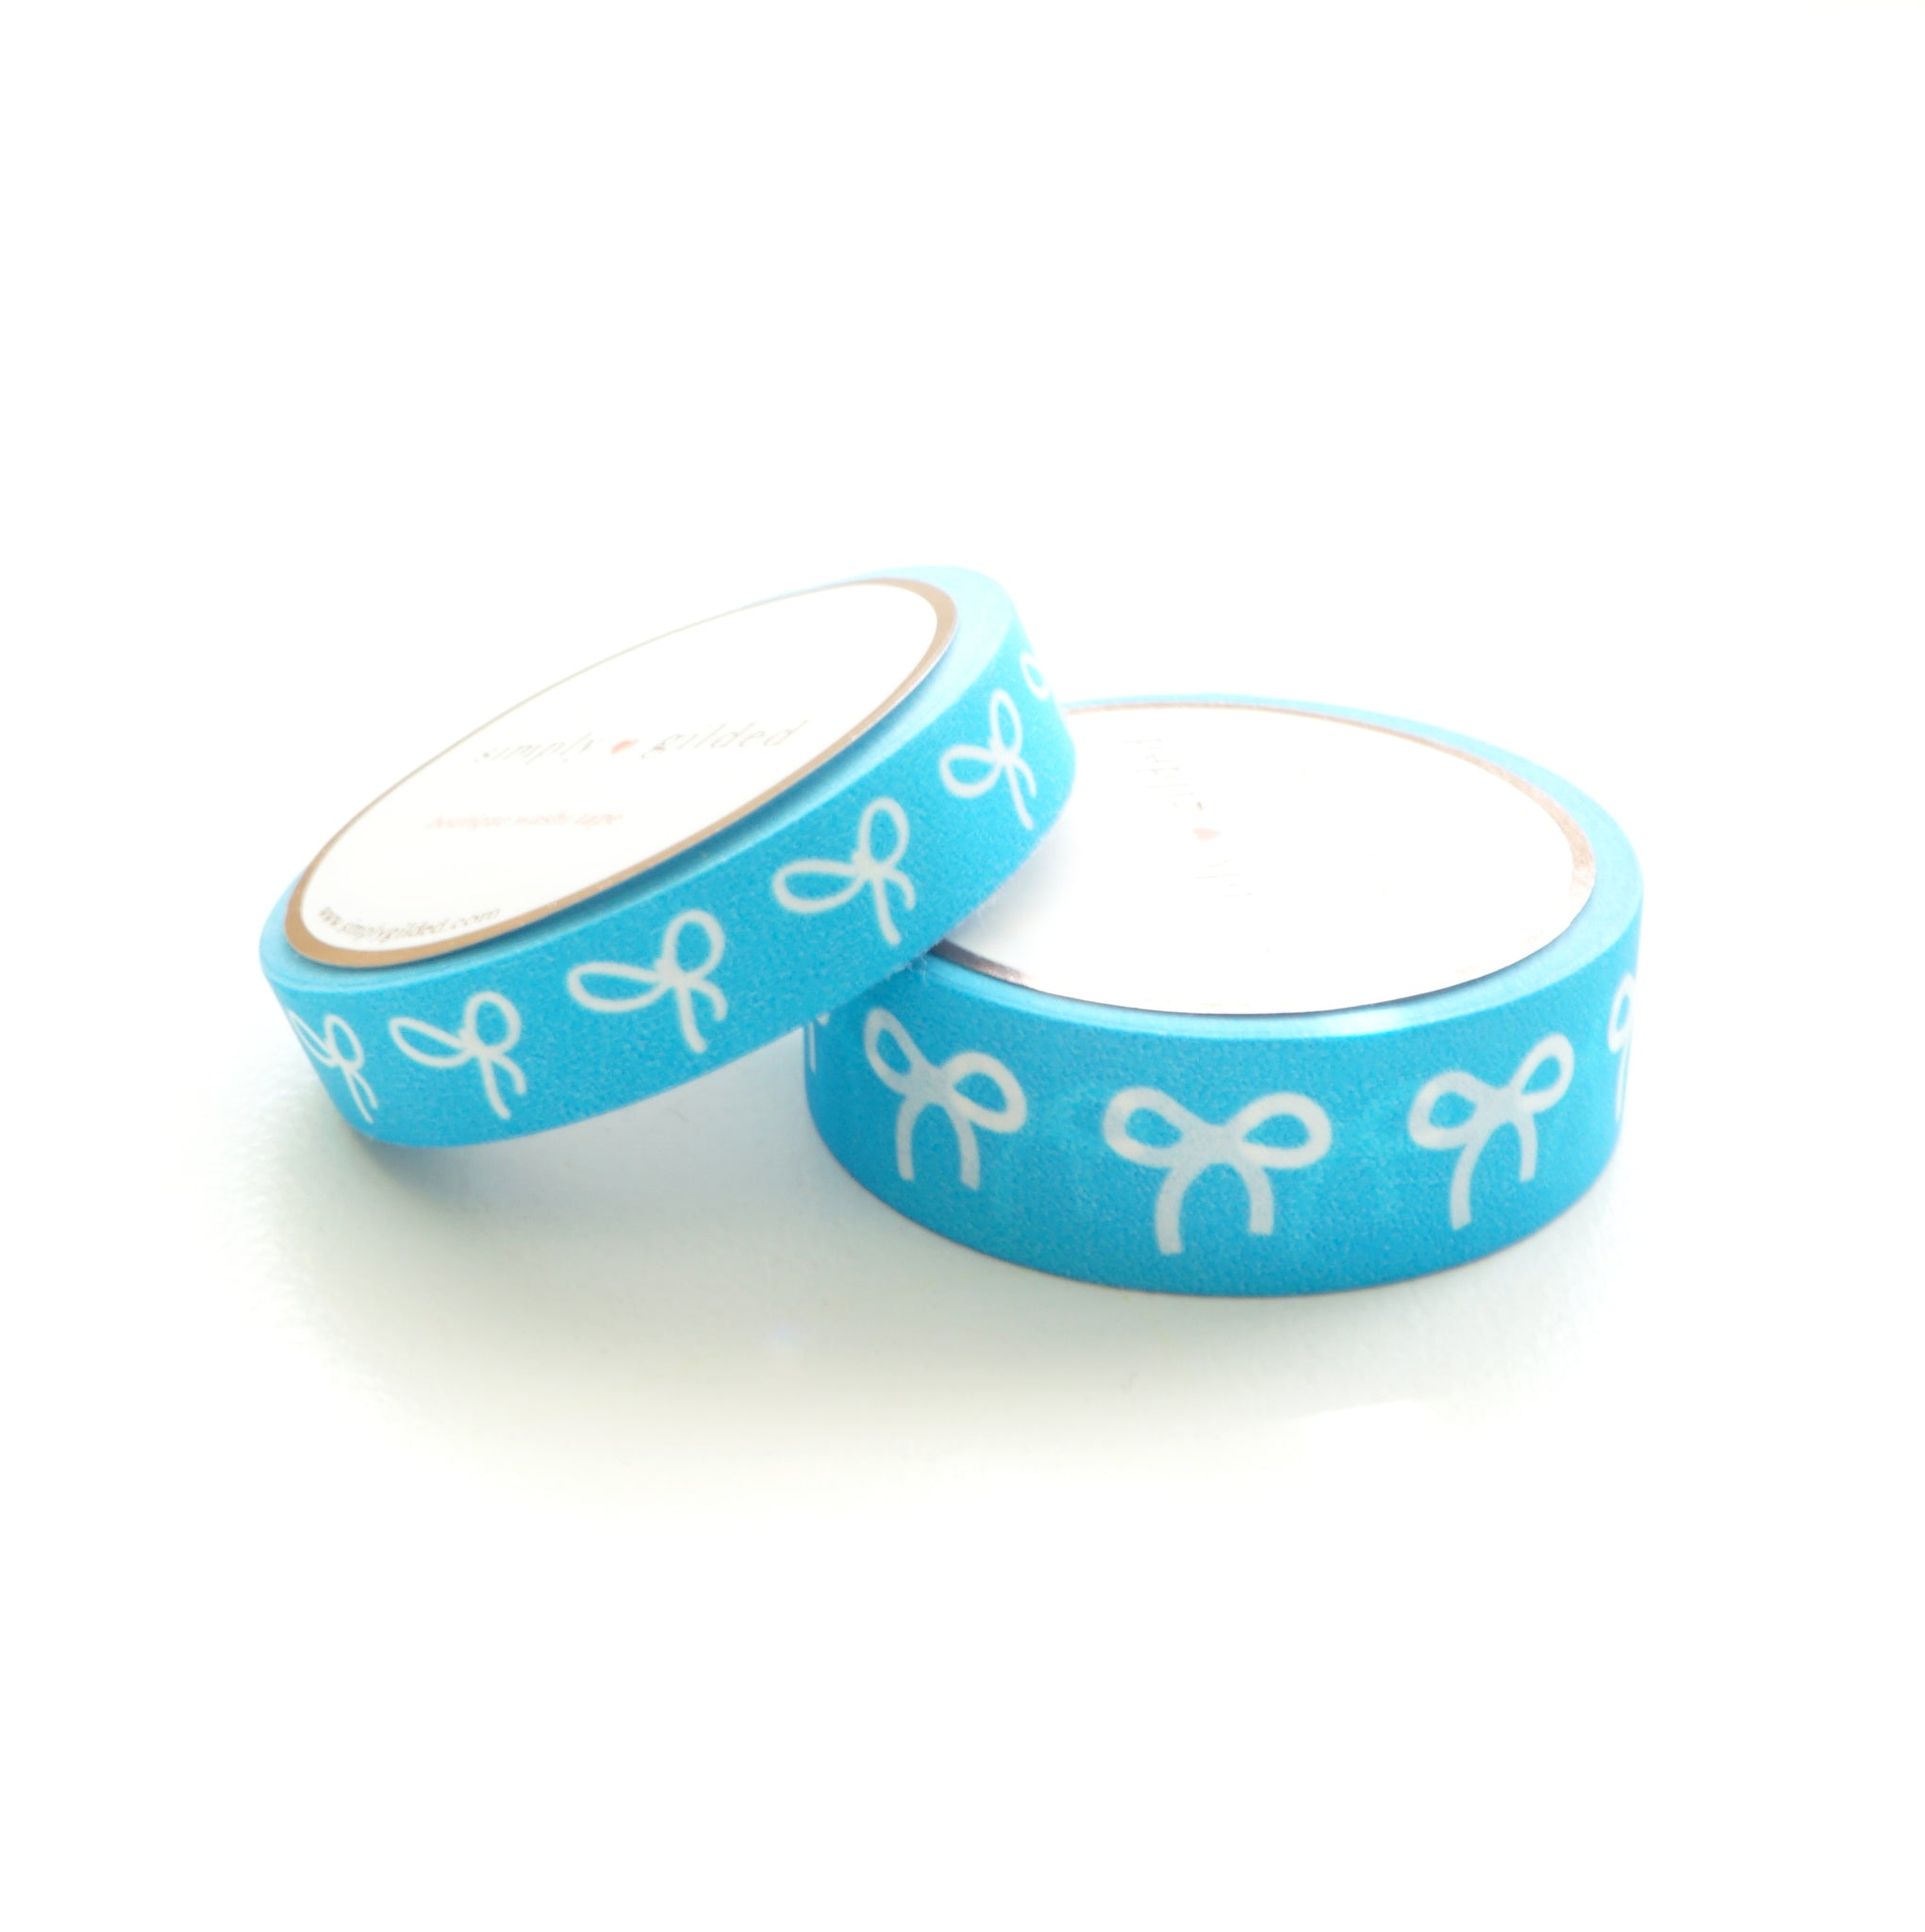 WASHI TAPE 15/10mm BOW set - Neon BLUE + white bows (May 29th Release)